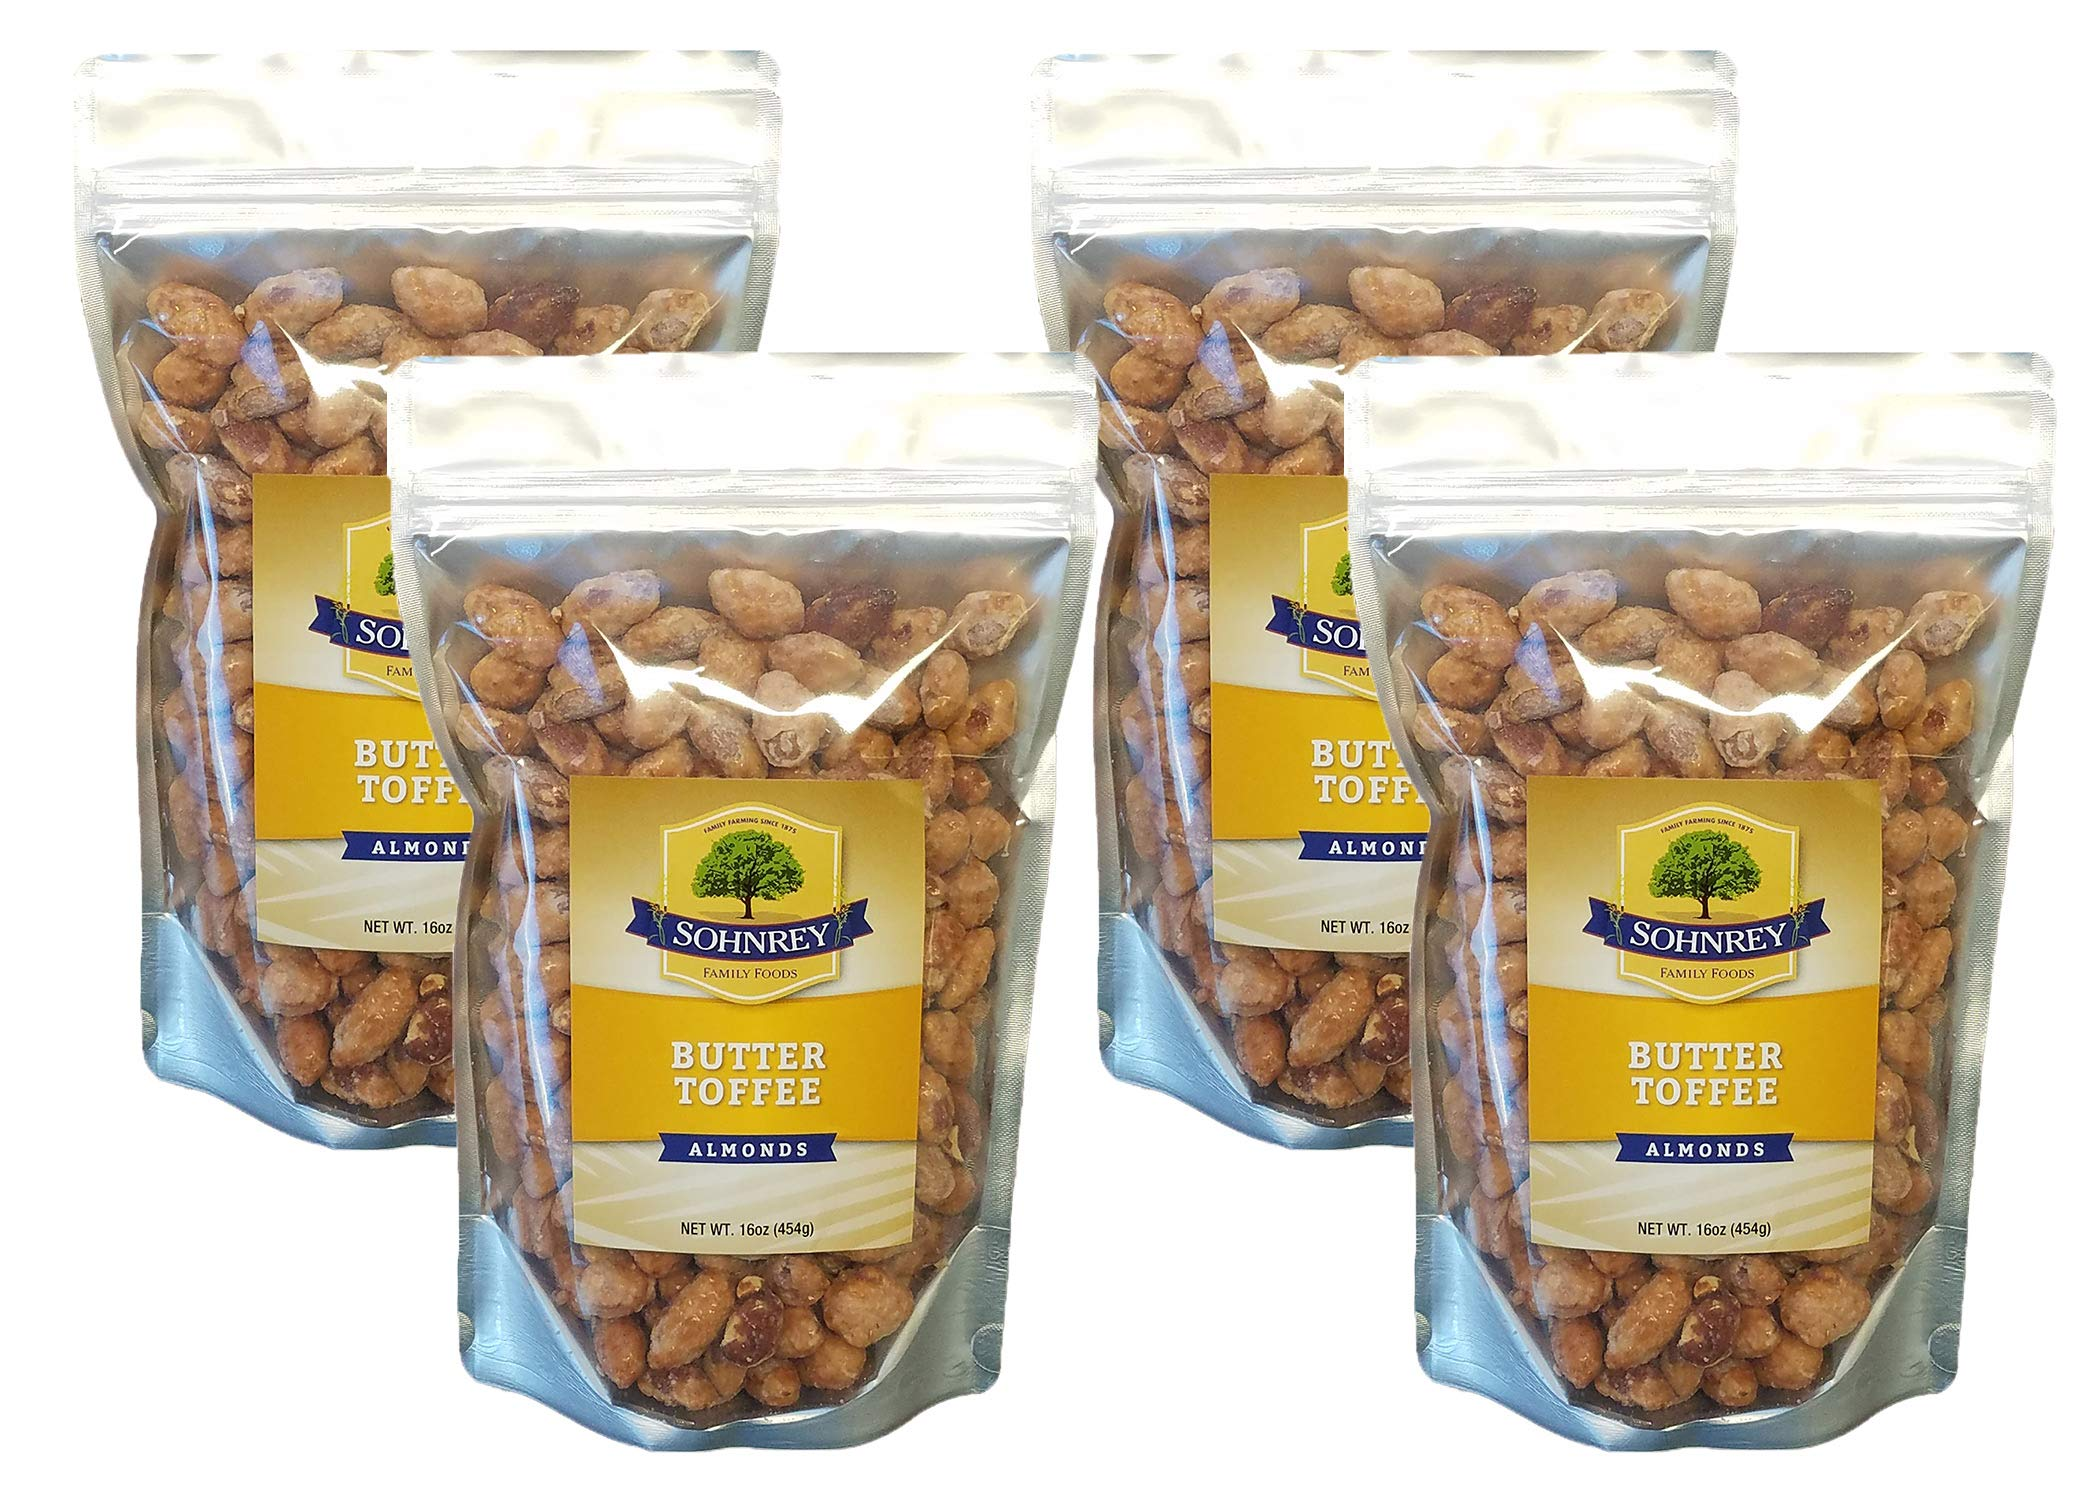 Butter Toffee Almonds Fresh Gourmet Sweet and Salty Crunch (16 oz) Resealable Bag from Sohnrey Family Foods (4-Pack (64 oz))